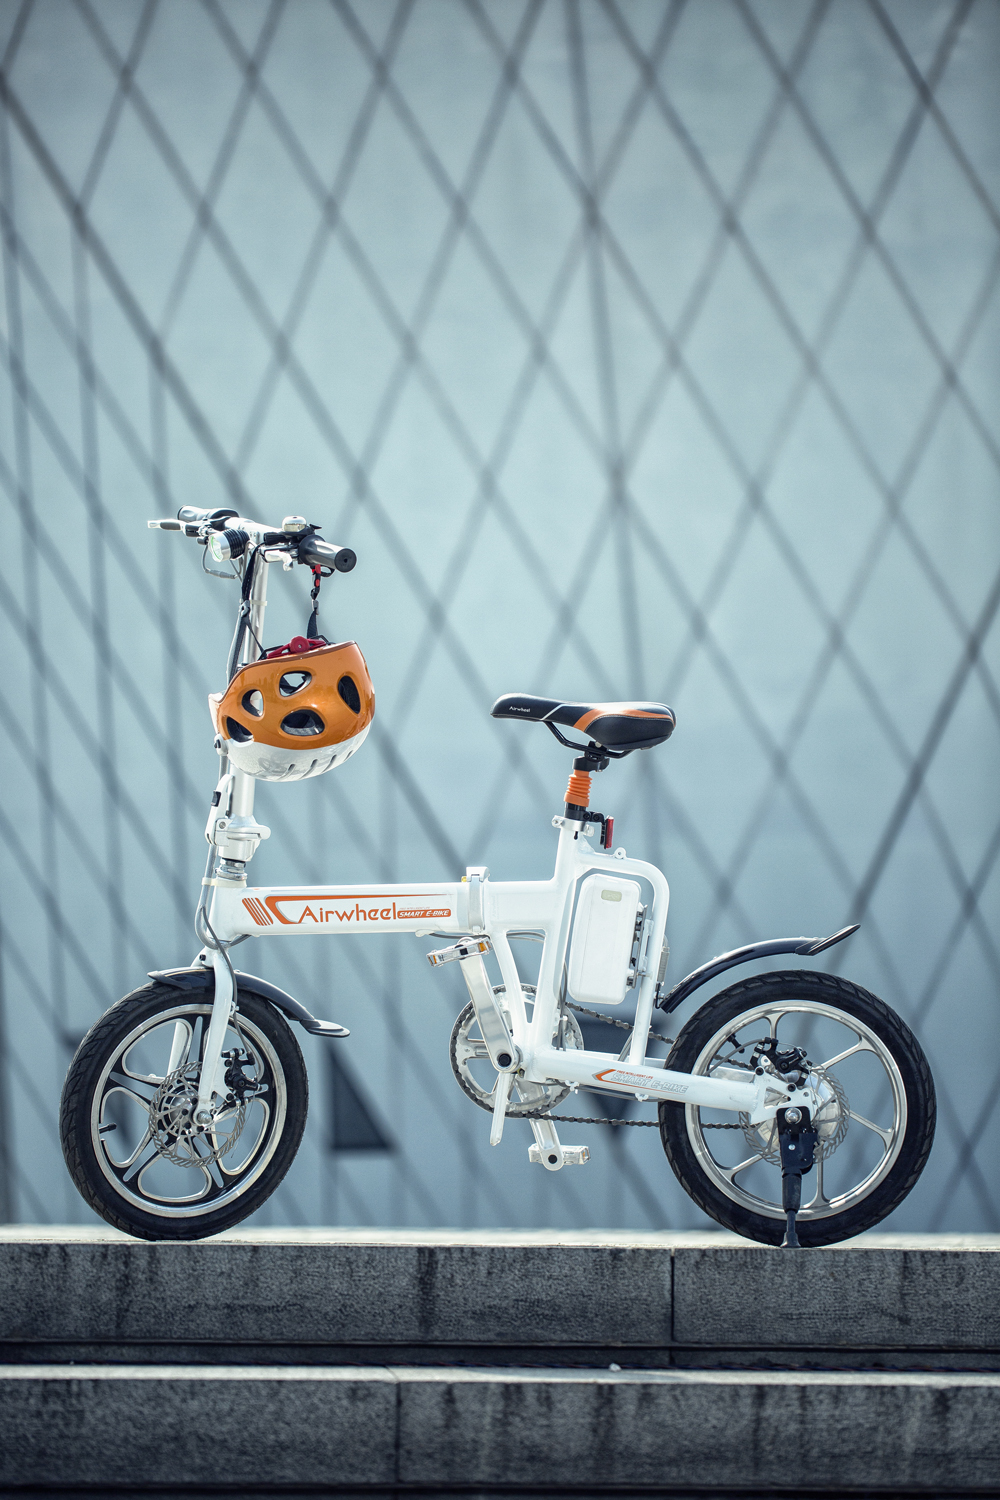 Airwheel R5 electric power bike